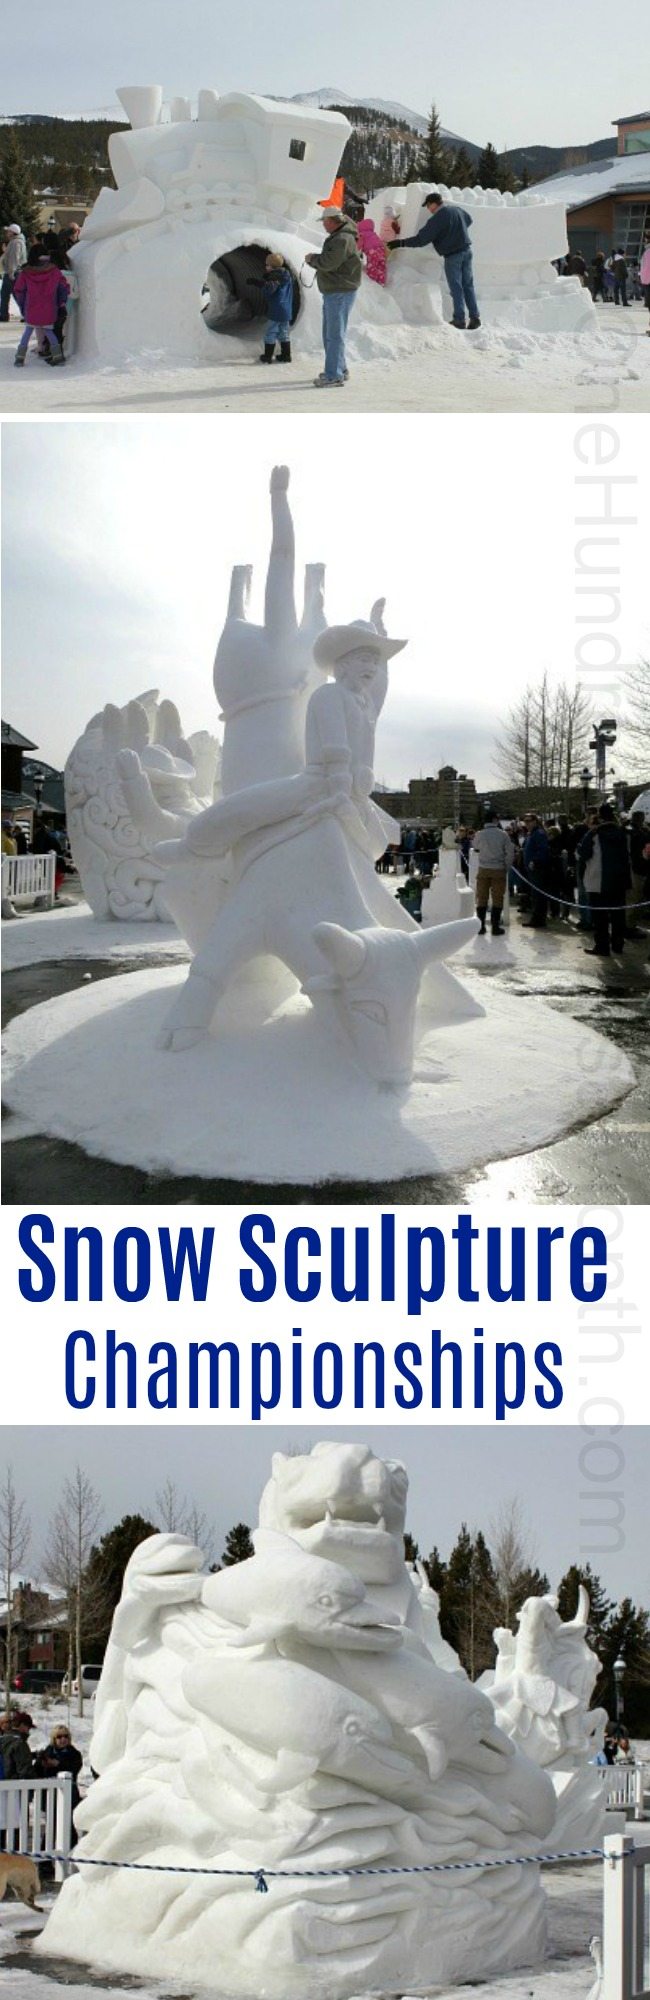 2013 International Snow Sculpture Championships